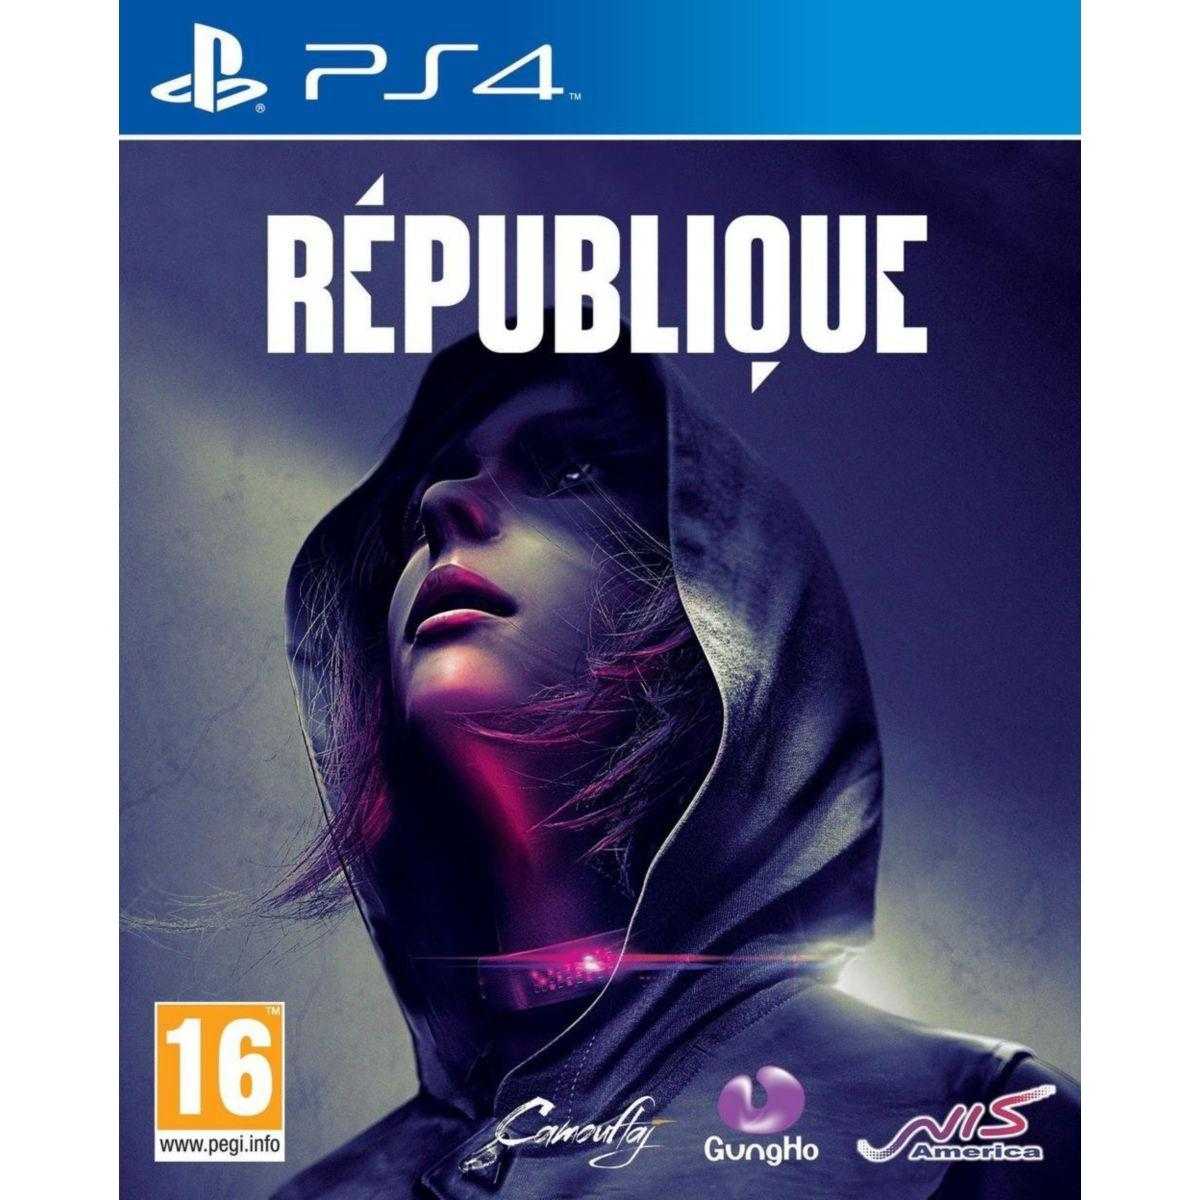 Jeu ps4 koch media republique remastered - 15% de remise immédiate avec le code : cool15 (photo)